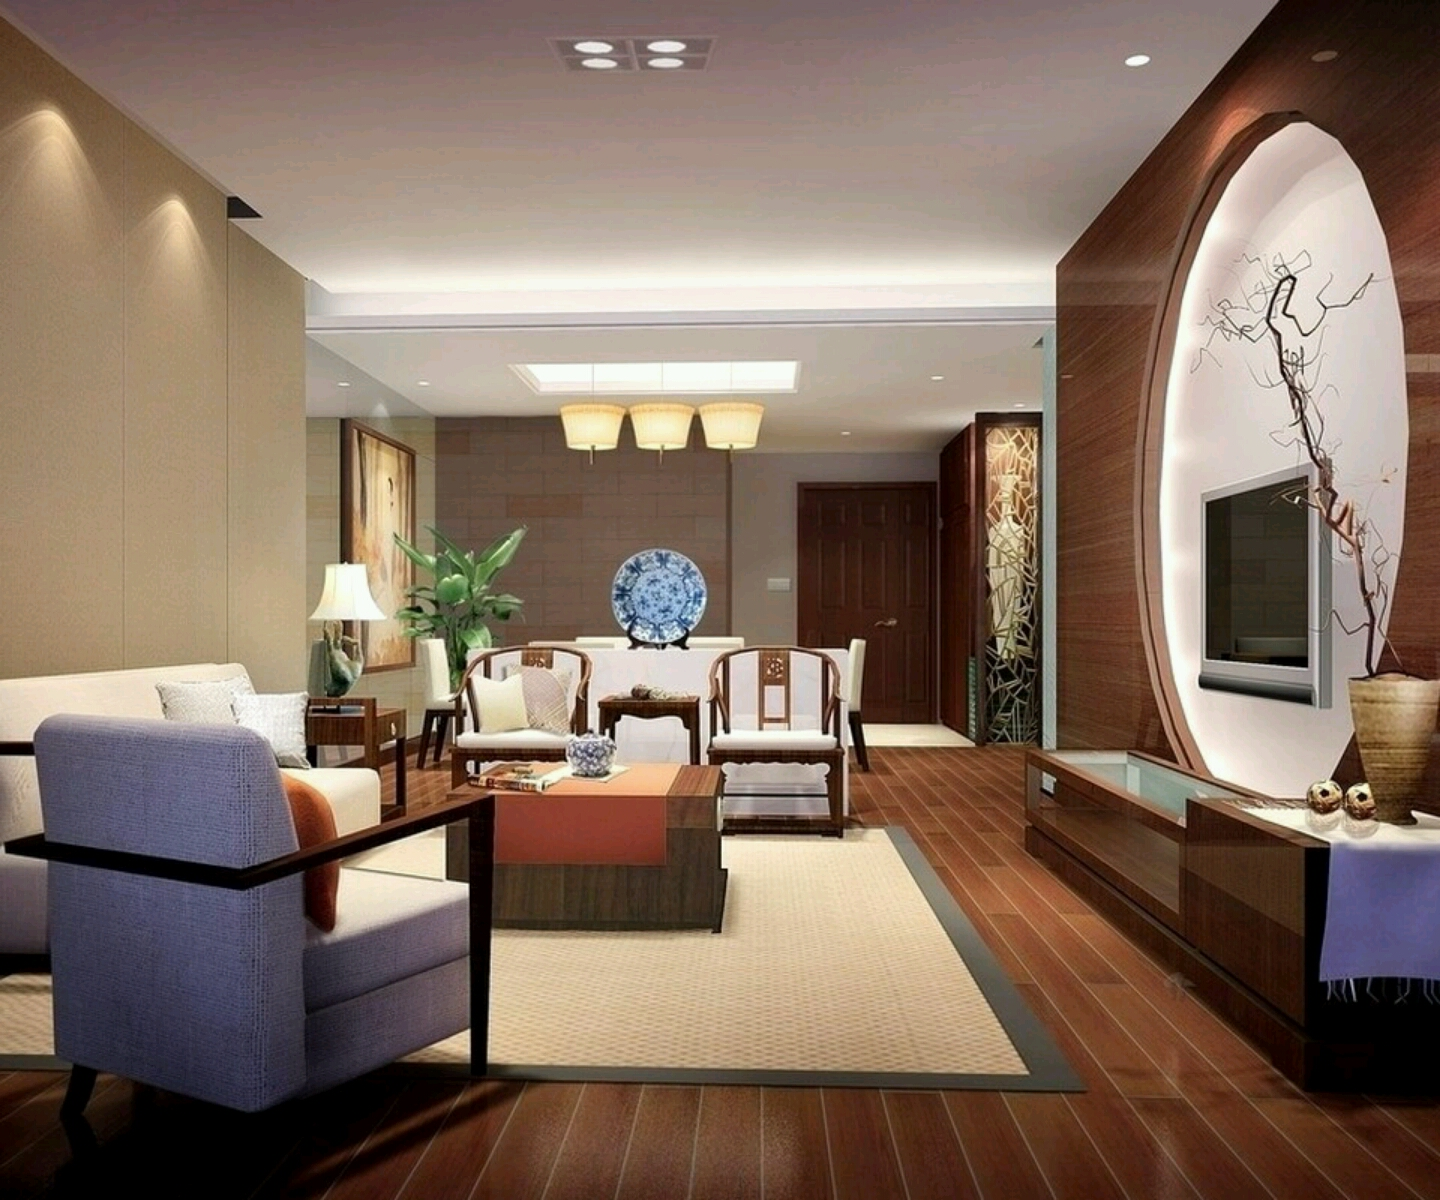 Luxury homes interior decoration living room designs ideas for New room interior design